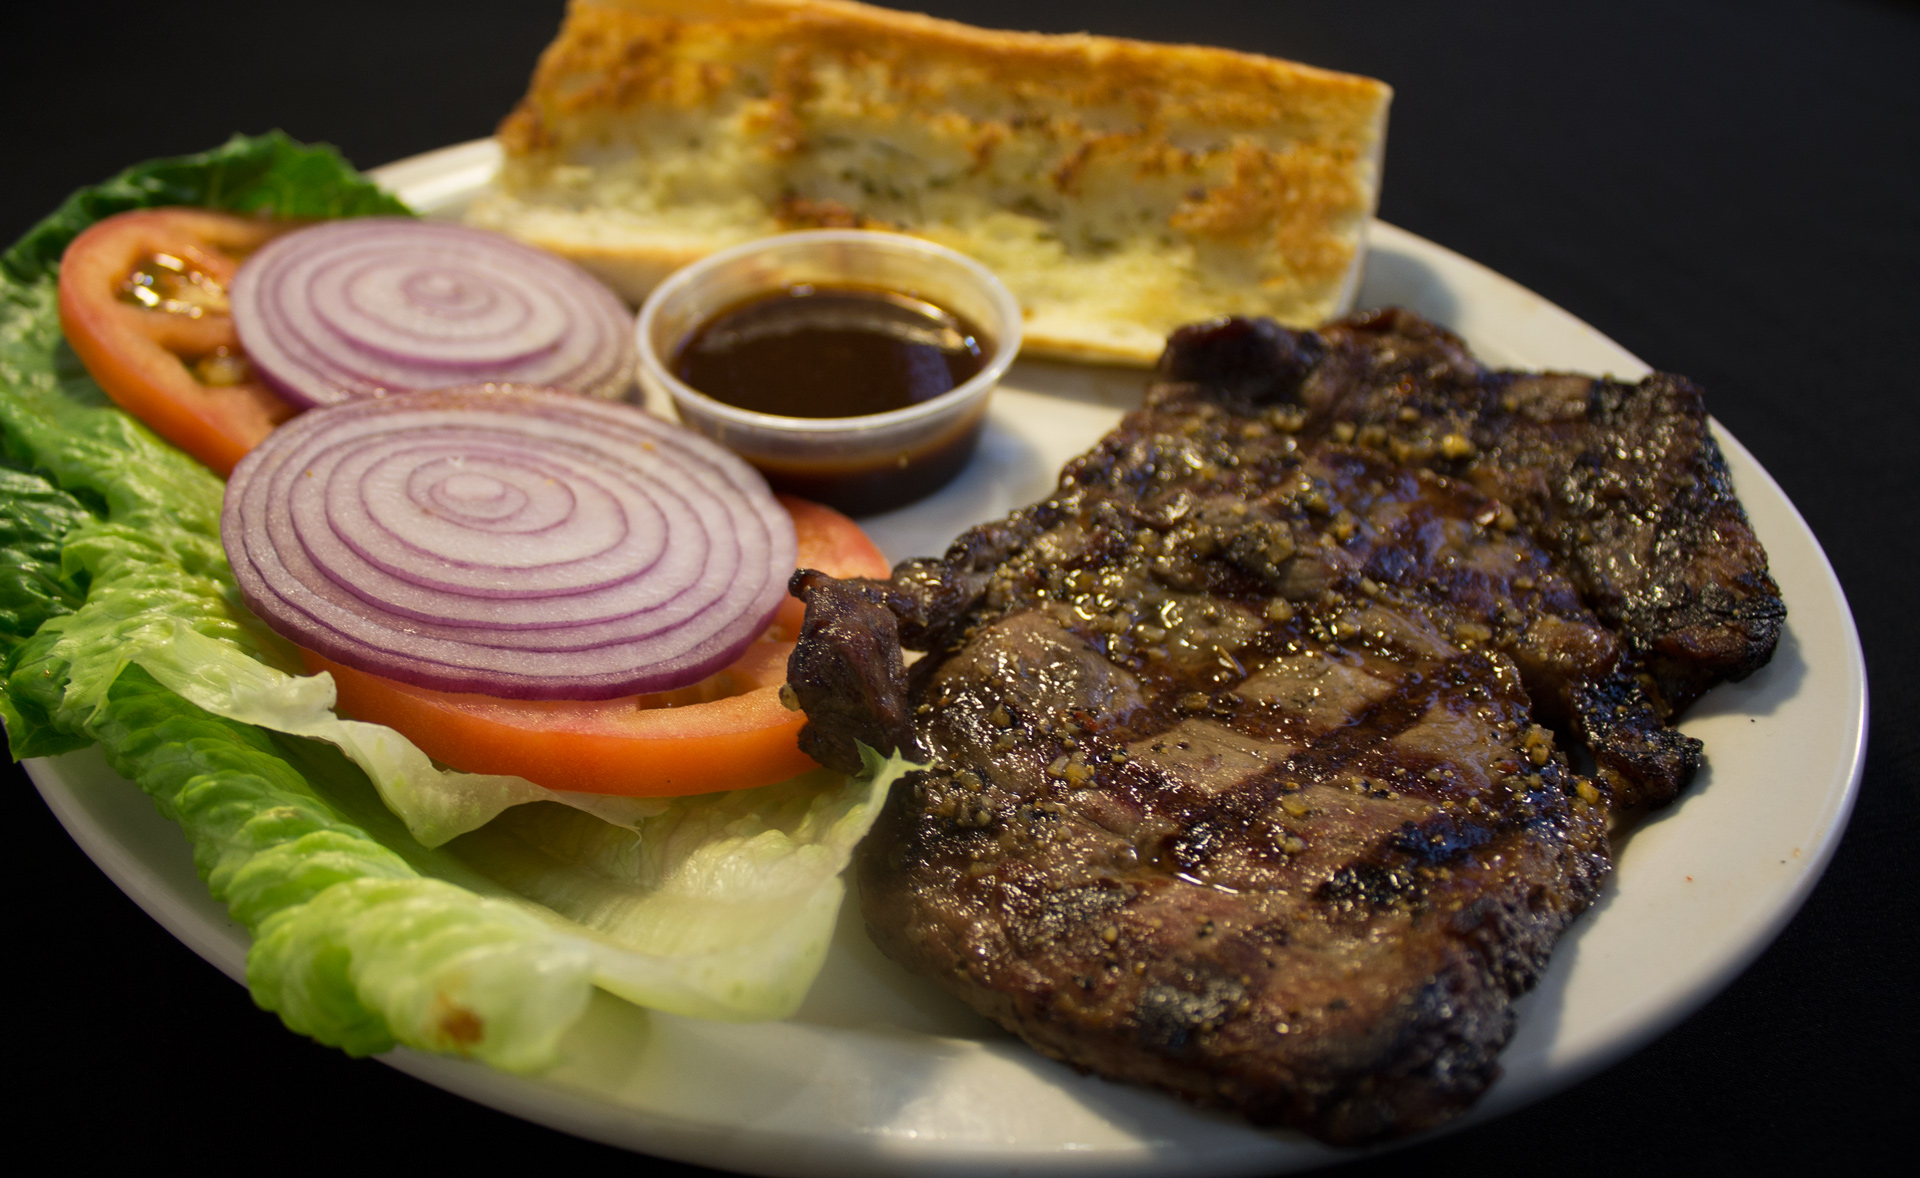 TRY OUR DELICIOUS N JUICY RIBEYE STEAK!